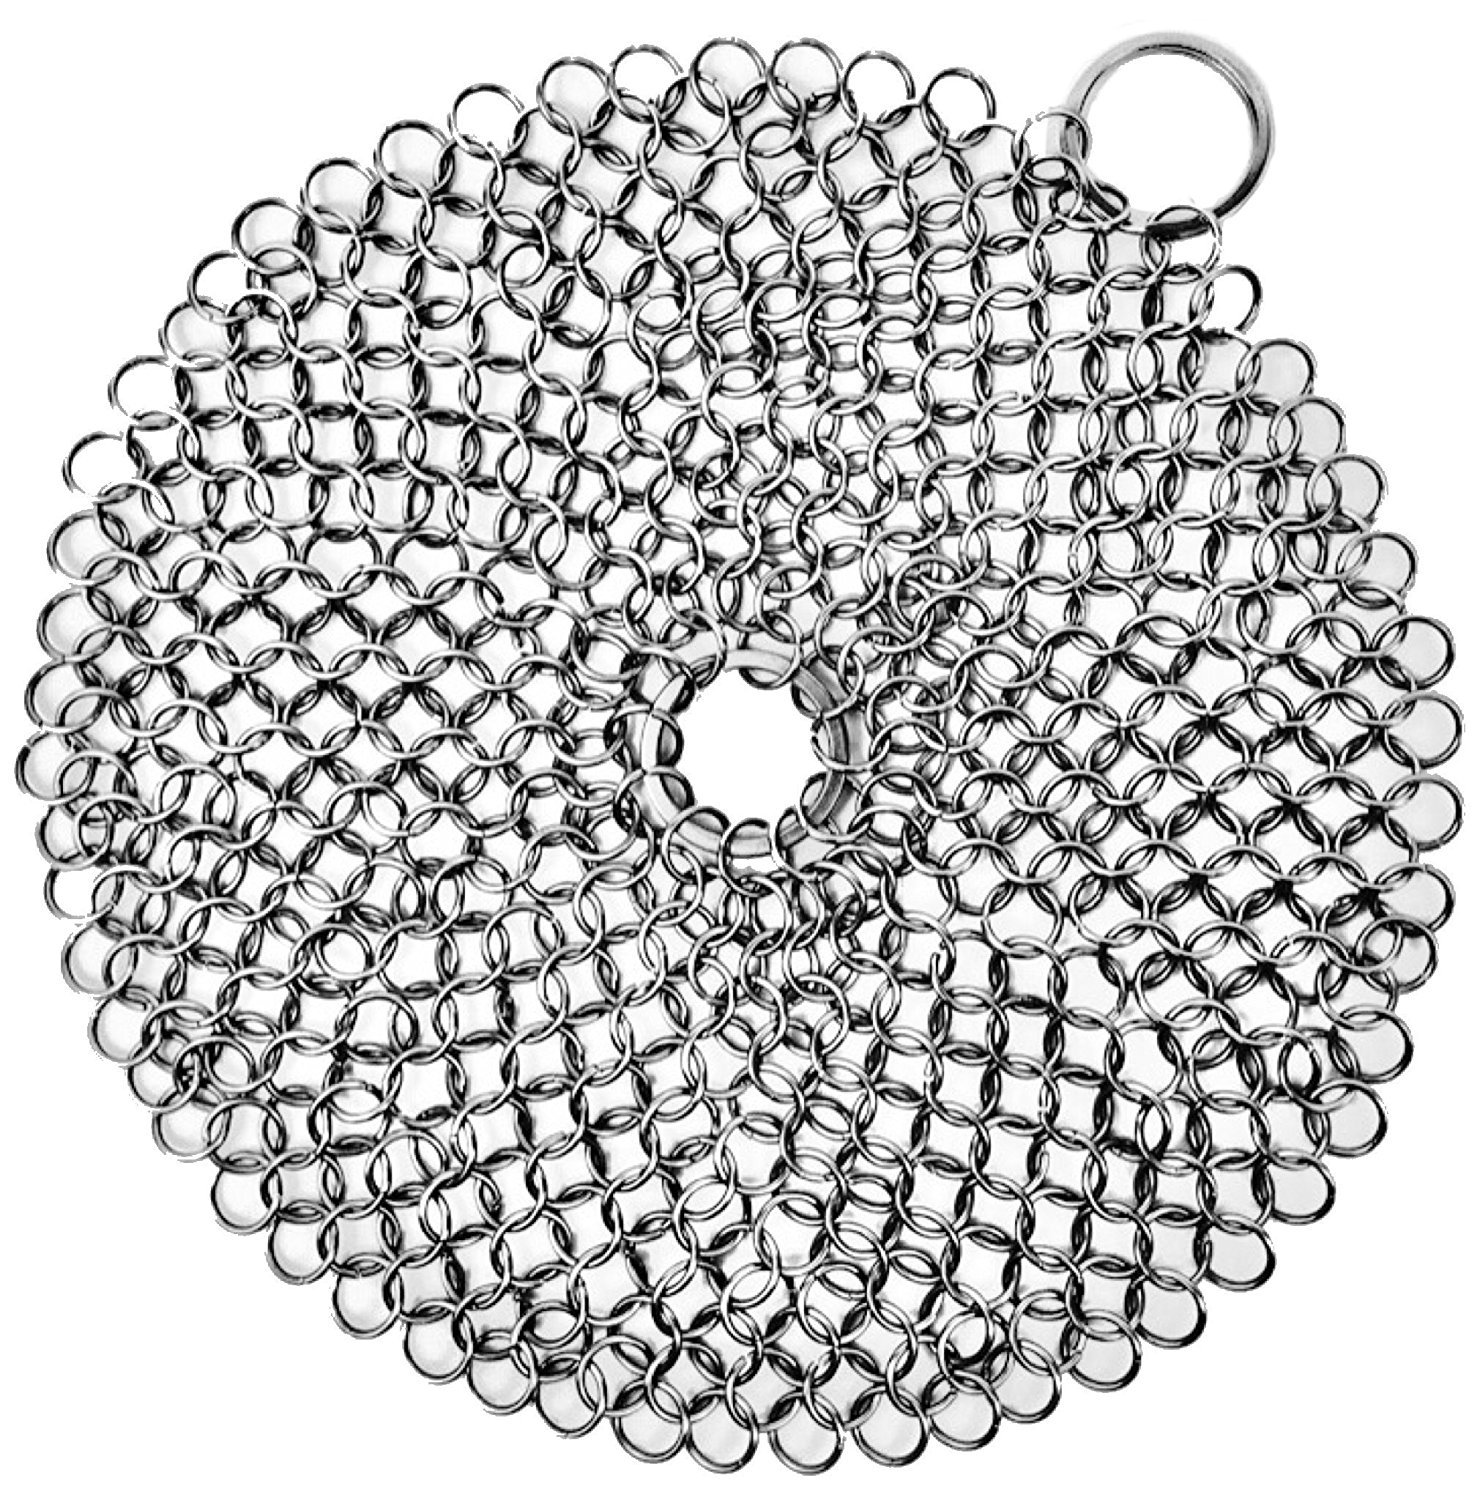 Cast Iron Cleaner, Stainless Steel Chainmail Scrubber - Cookware Cleaner For Skillet, Wok, Pot, Pan, Grill Scraper with Corner Ring | Home & Camping | Protects Cookware Seasoning (Round 7''x7'') by i-Auto Time